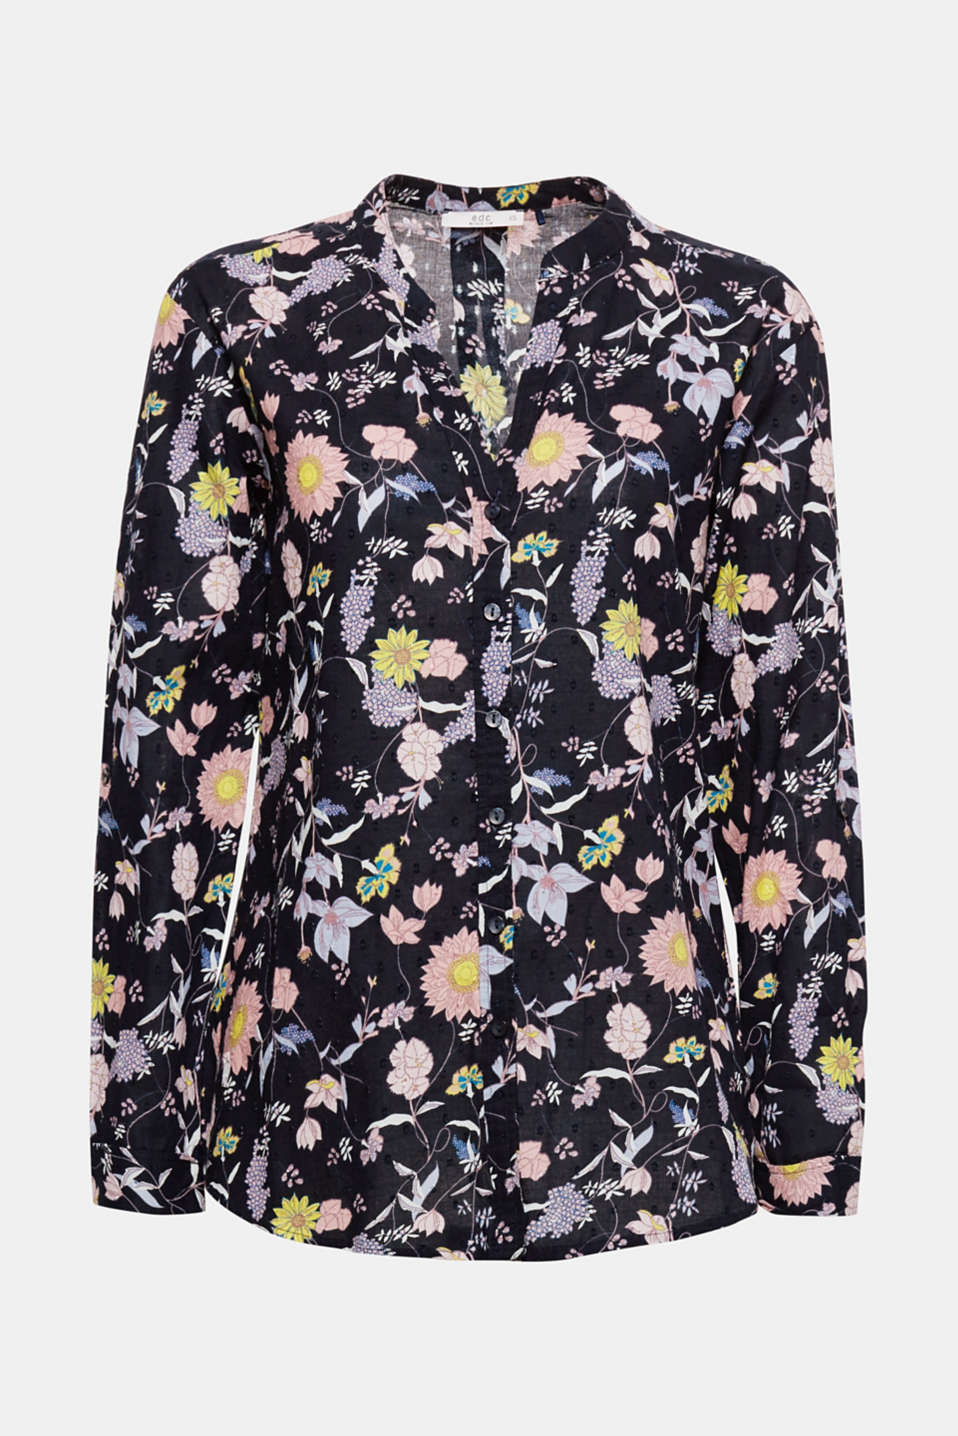 Let the spring into your wardrobe with this floral print blouse in floaty cotton with a nubbed texture.